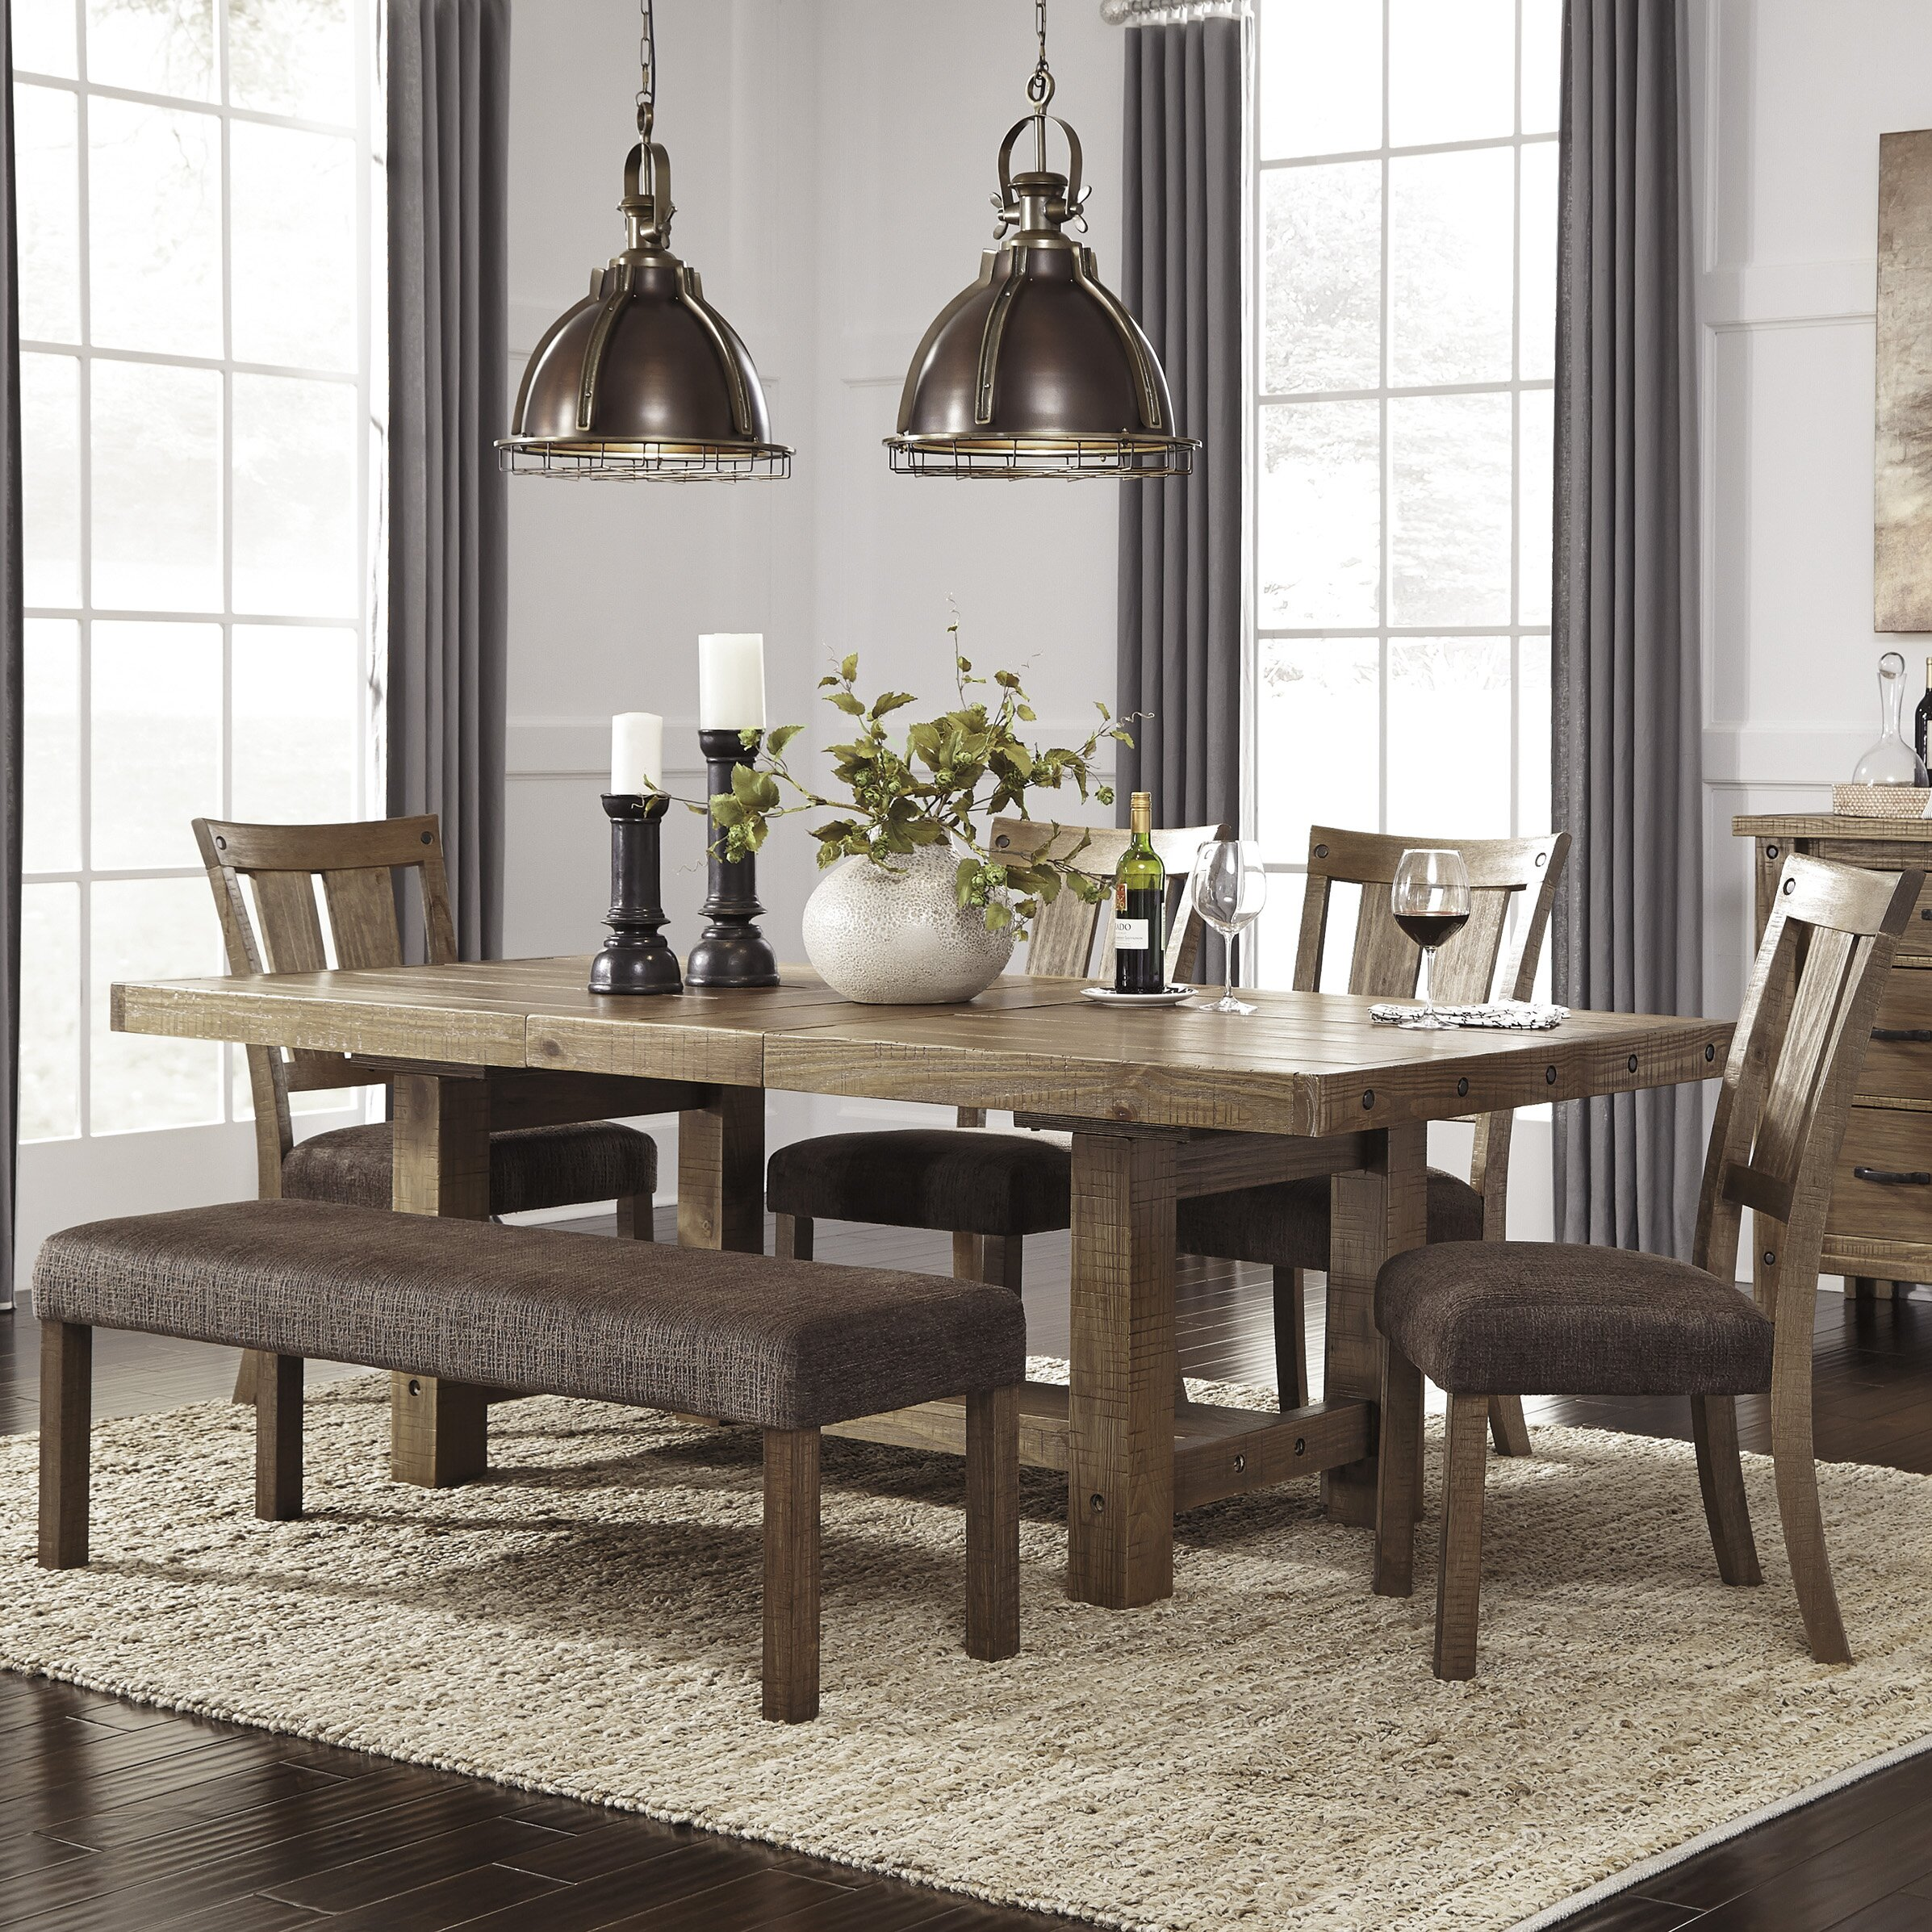 Signature design by ashley 9 piece dining set reviews for Dining room sets for 6